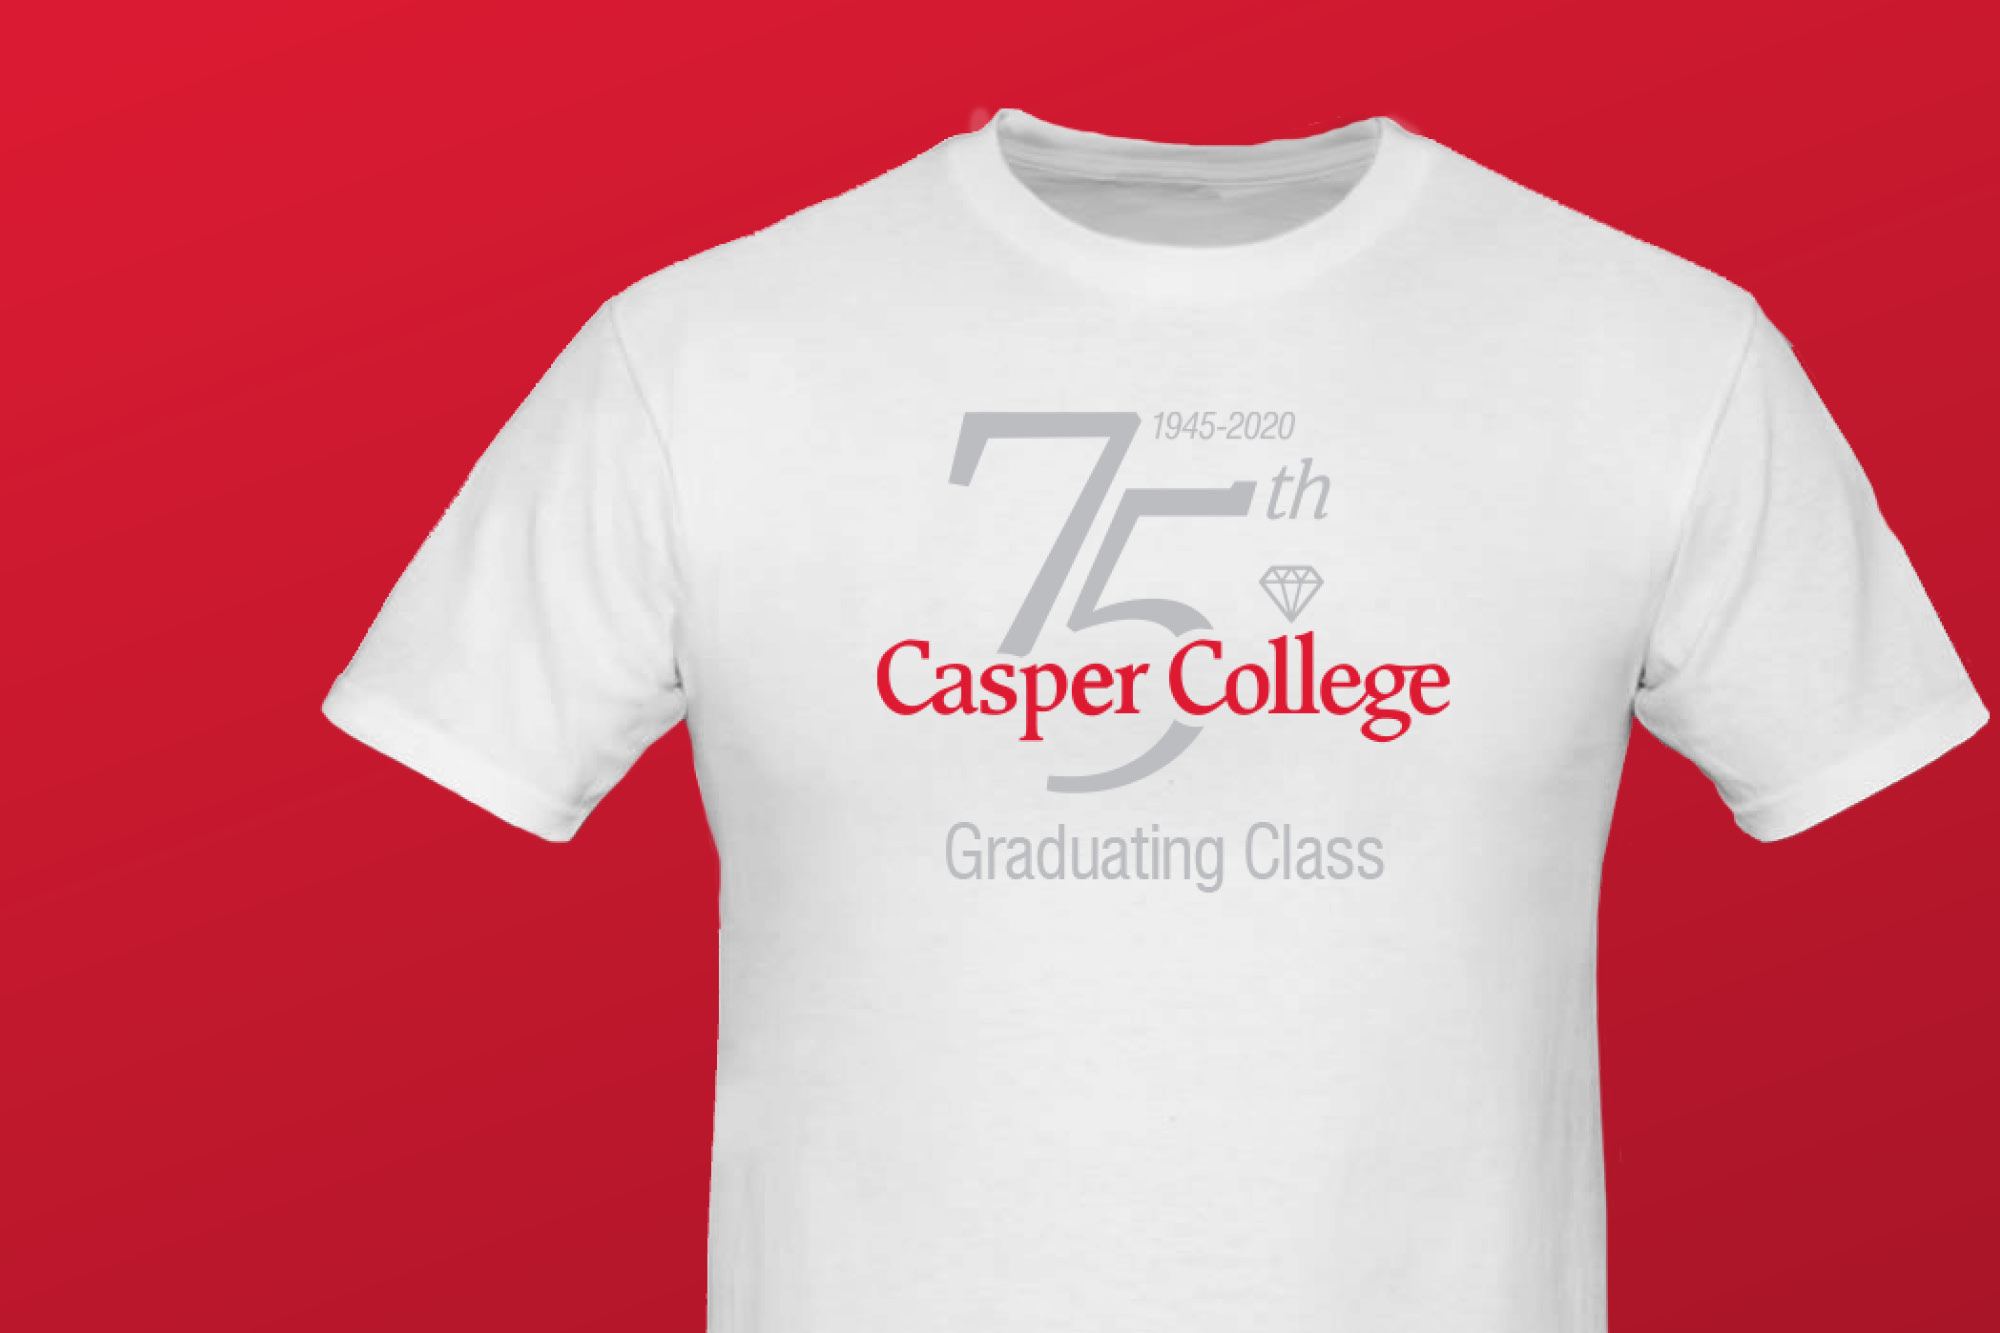 Image of Class of 2021 Commemorative T-shirt.